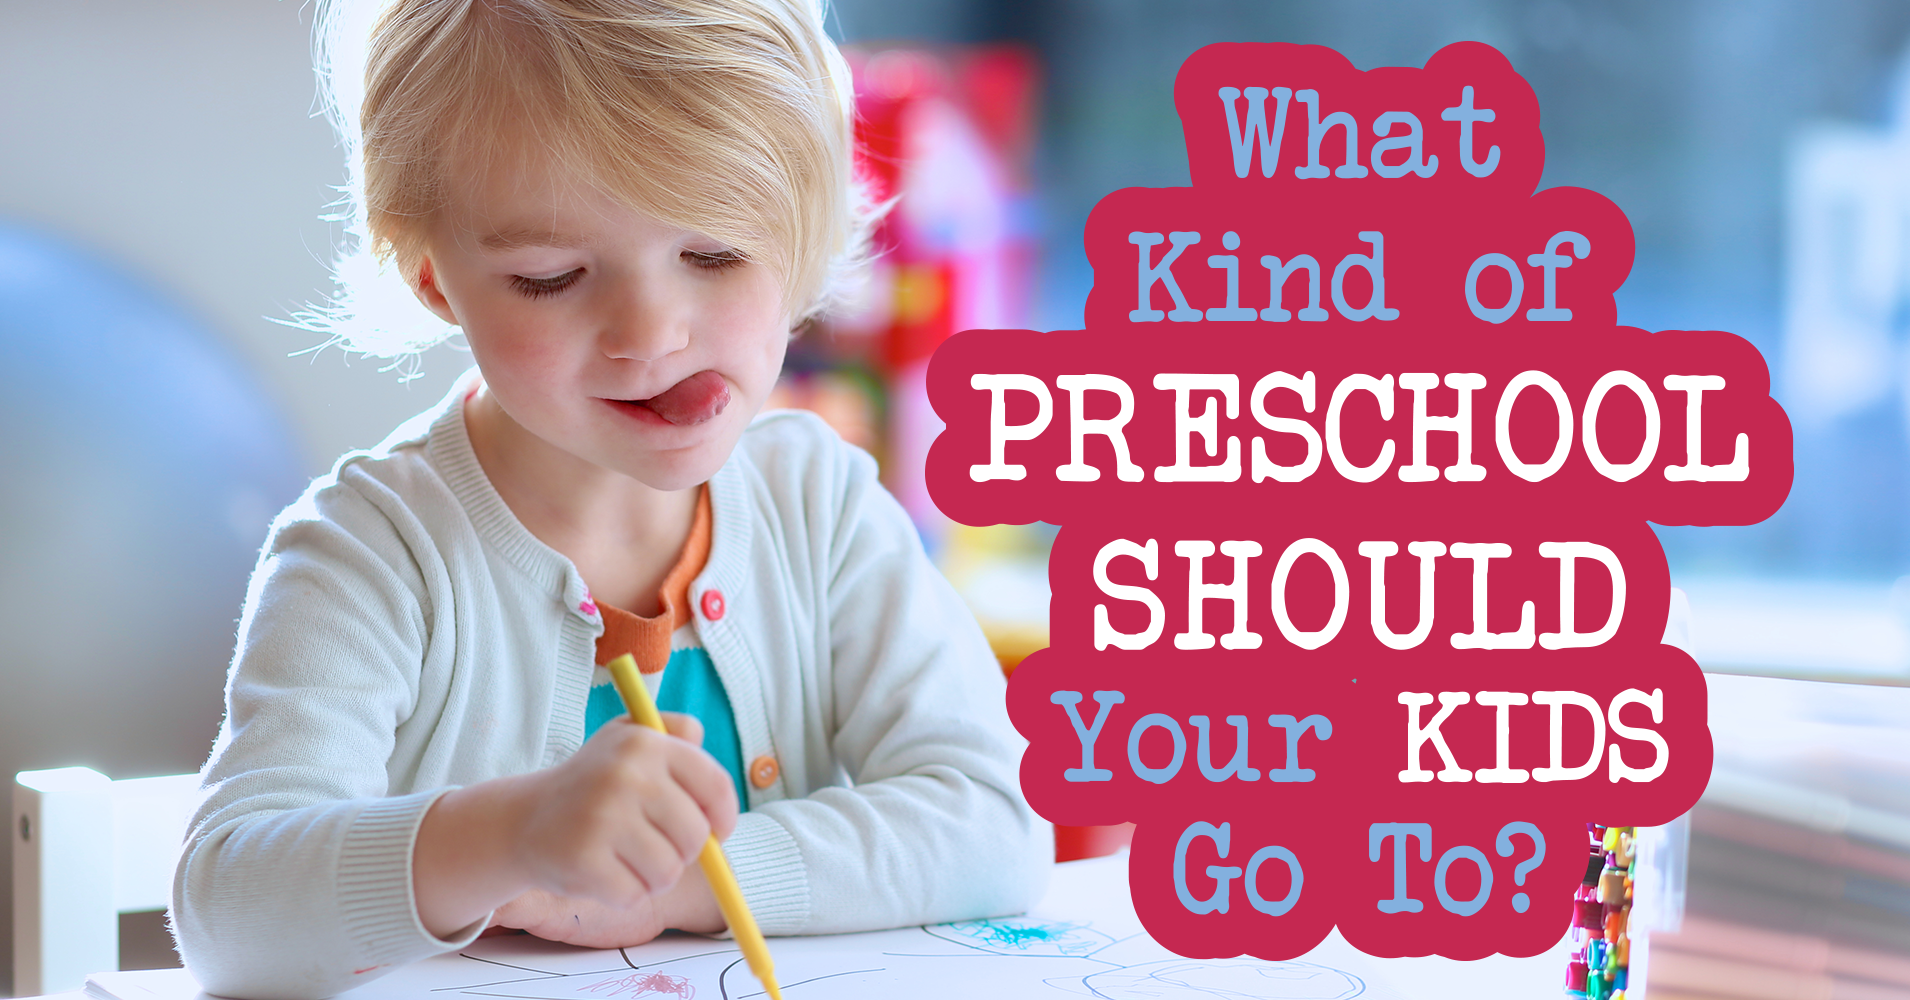 when do kids go to preschool what of preschool should your go to question 1 851